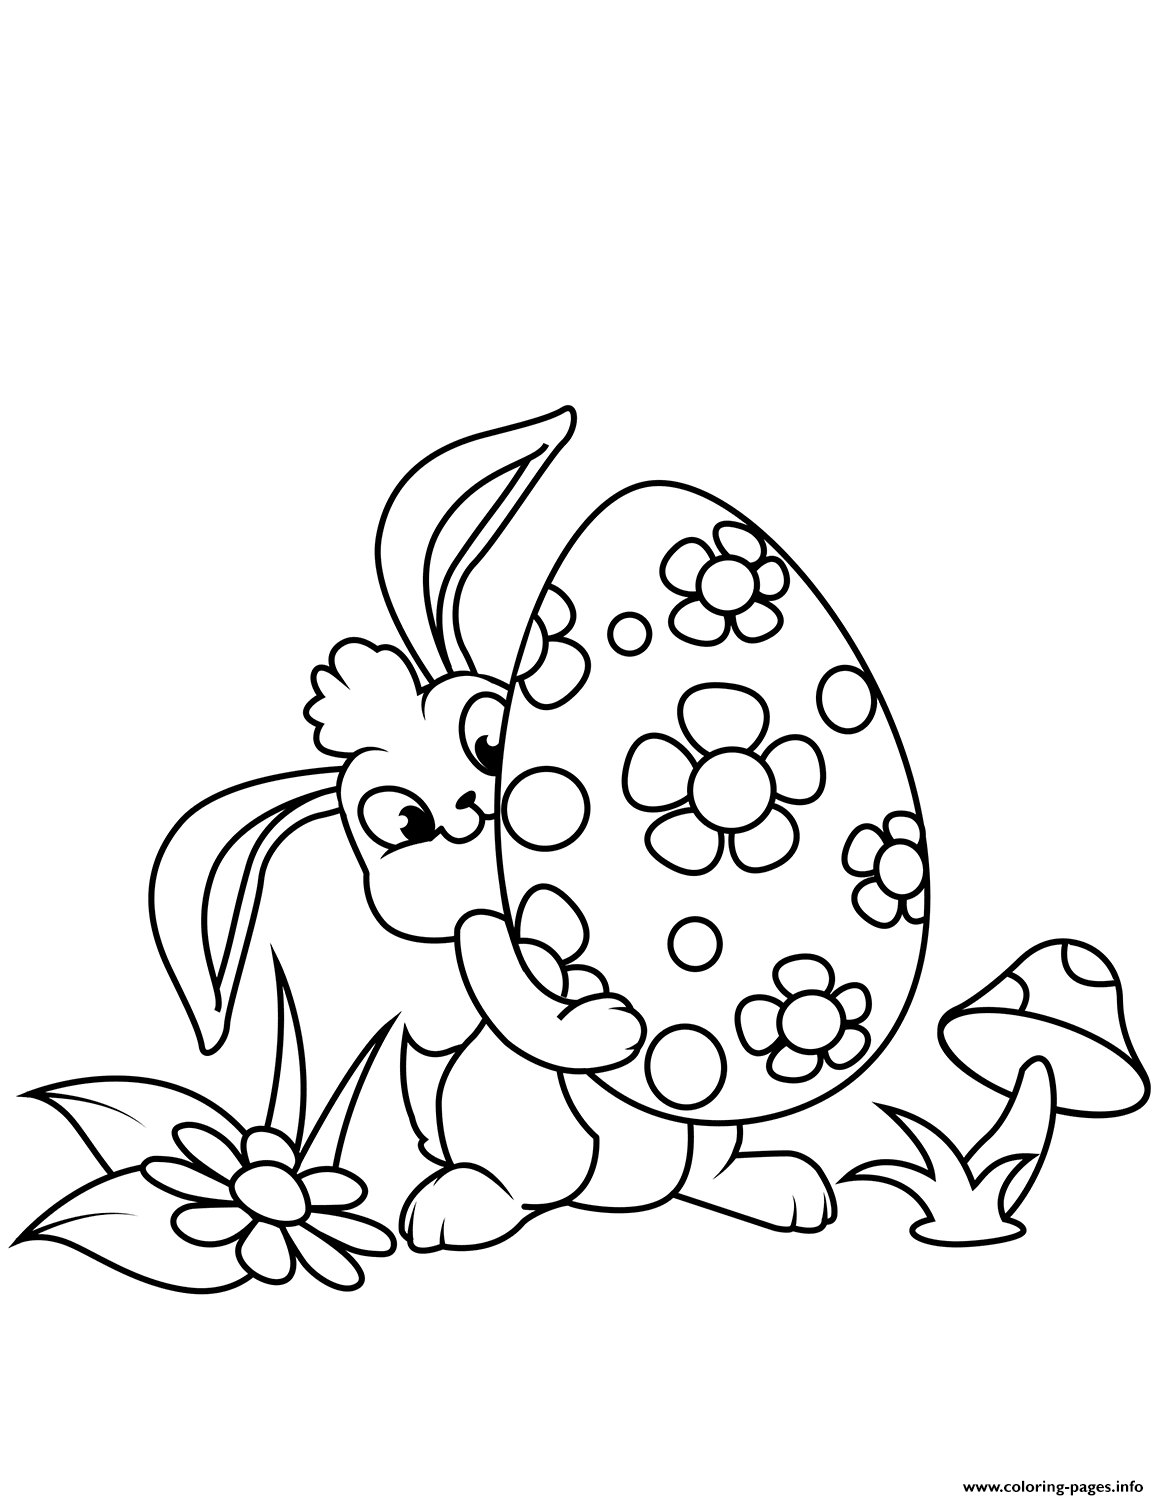 Cute Easter Bunny And Egg Coloring Pages Printable